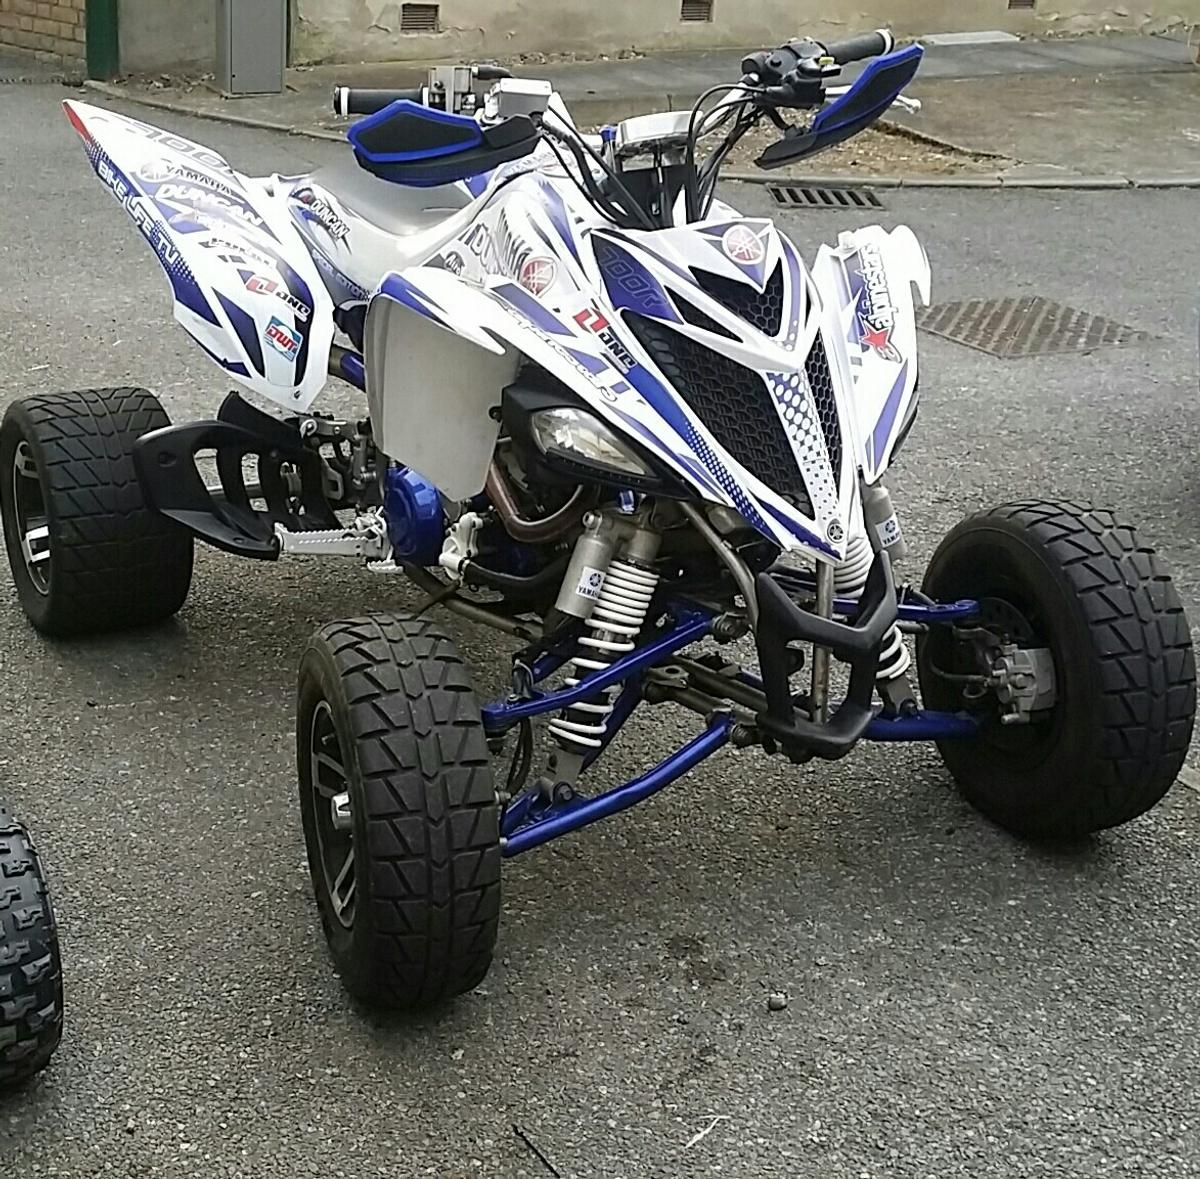 yamaha raptor 700 special edition 2006 in SE12 London for £5,200 00